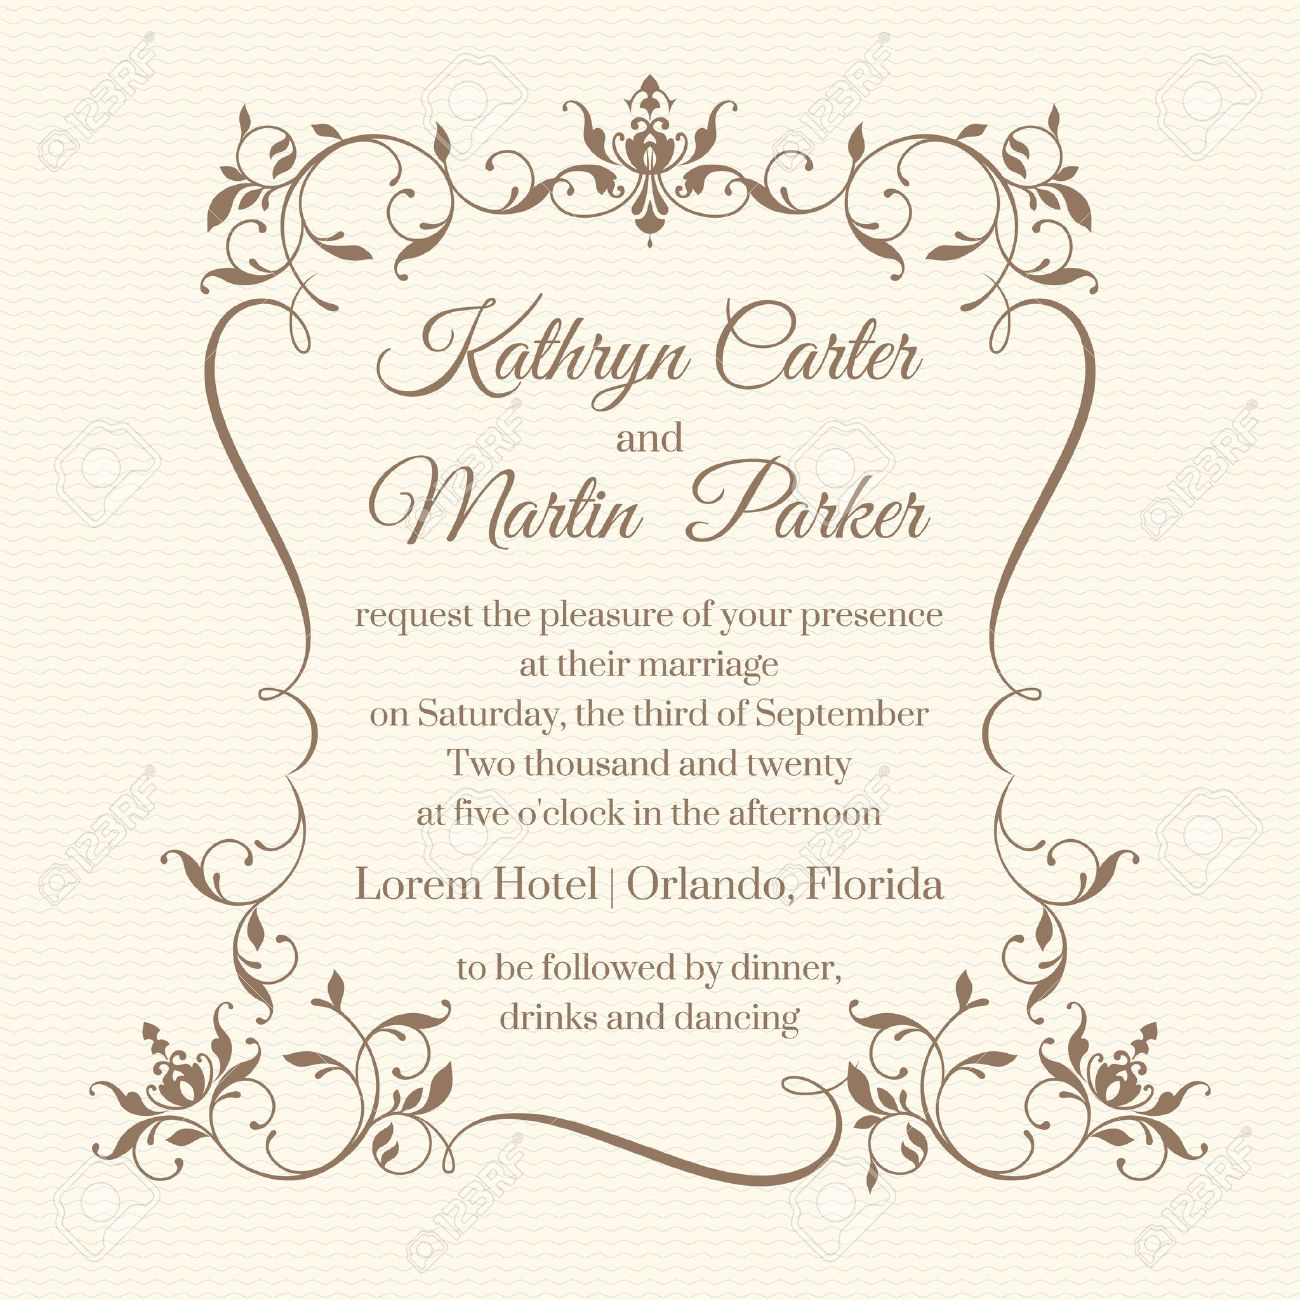 wedding invitation design classic cards decorative floral frame